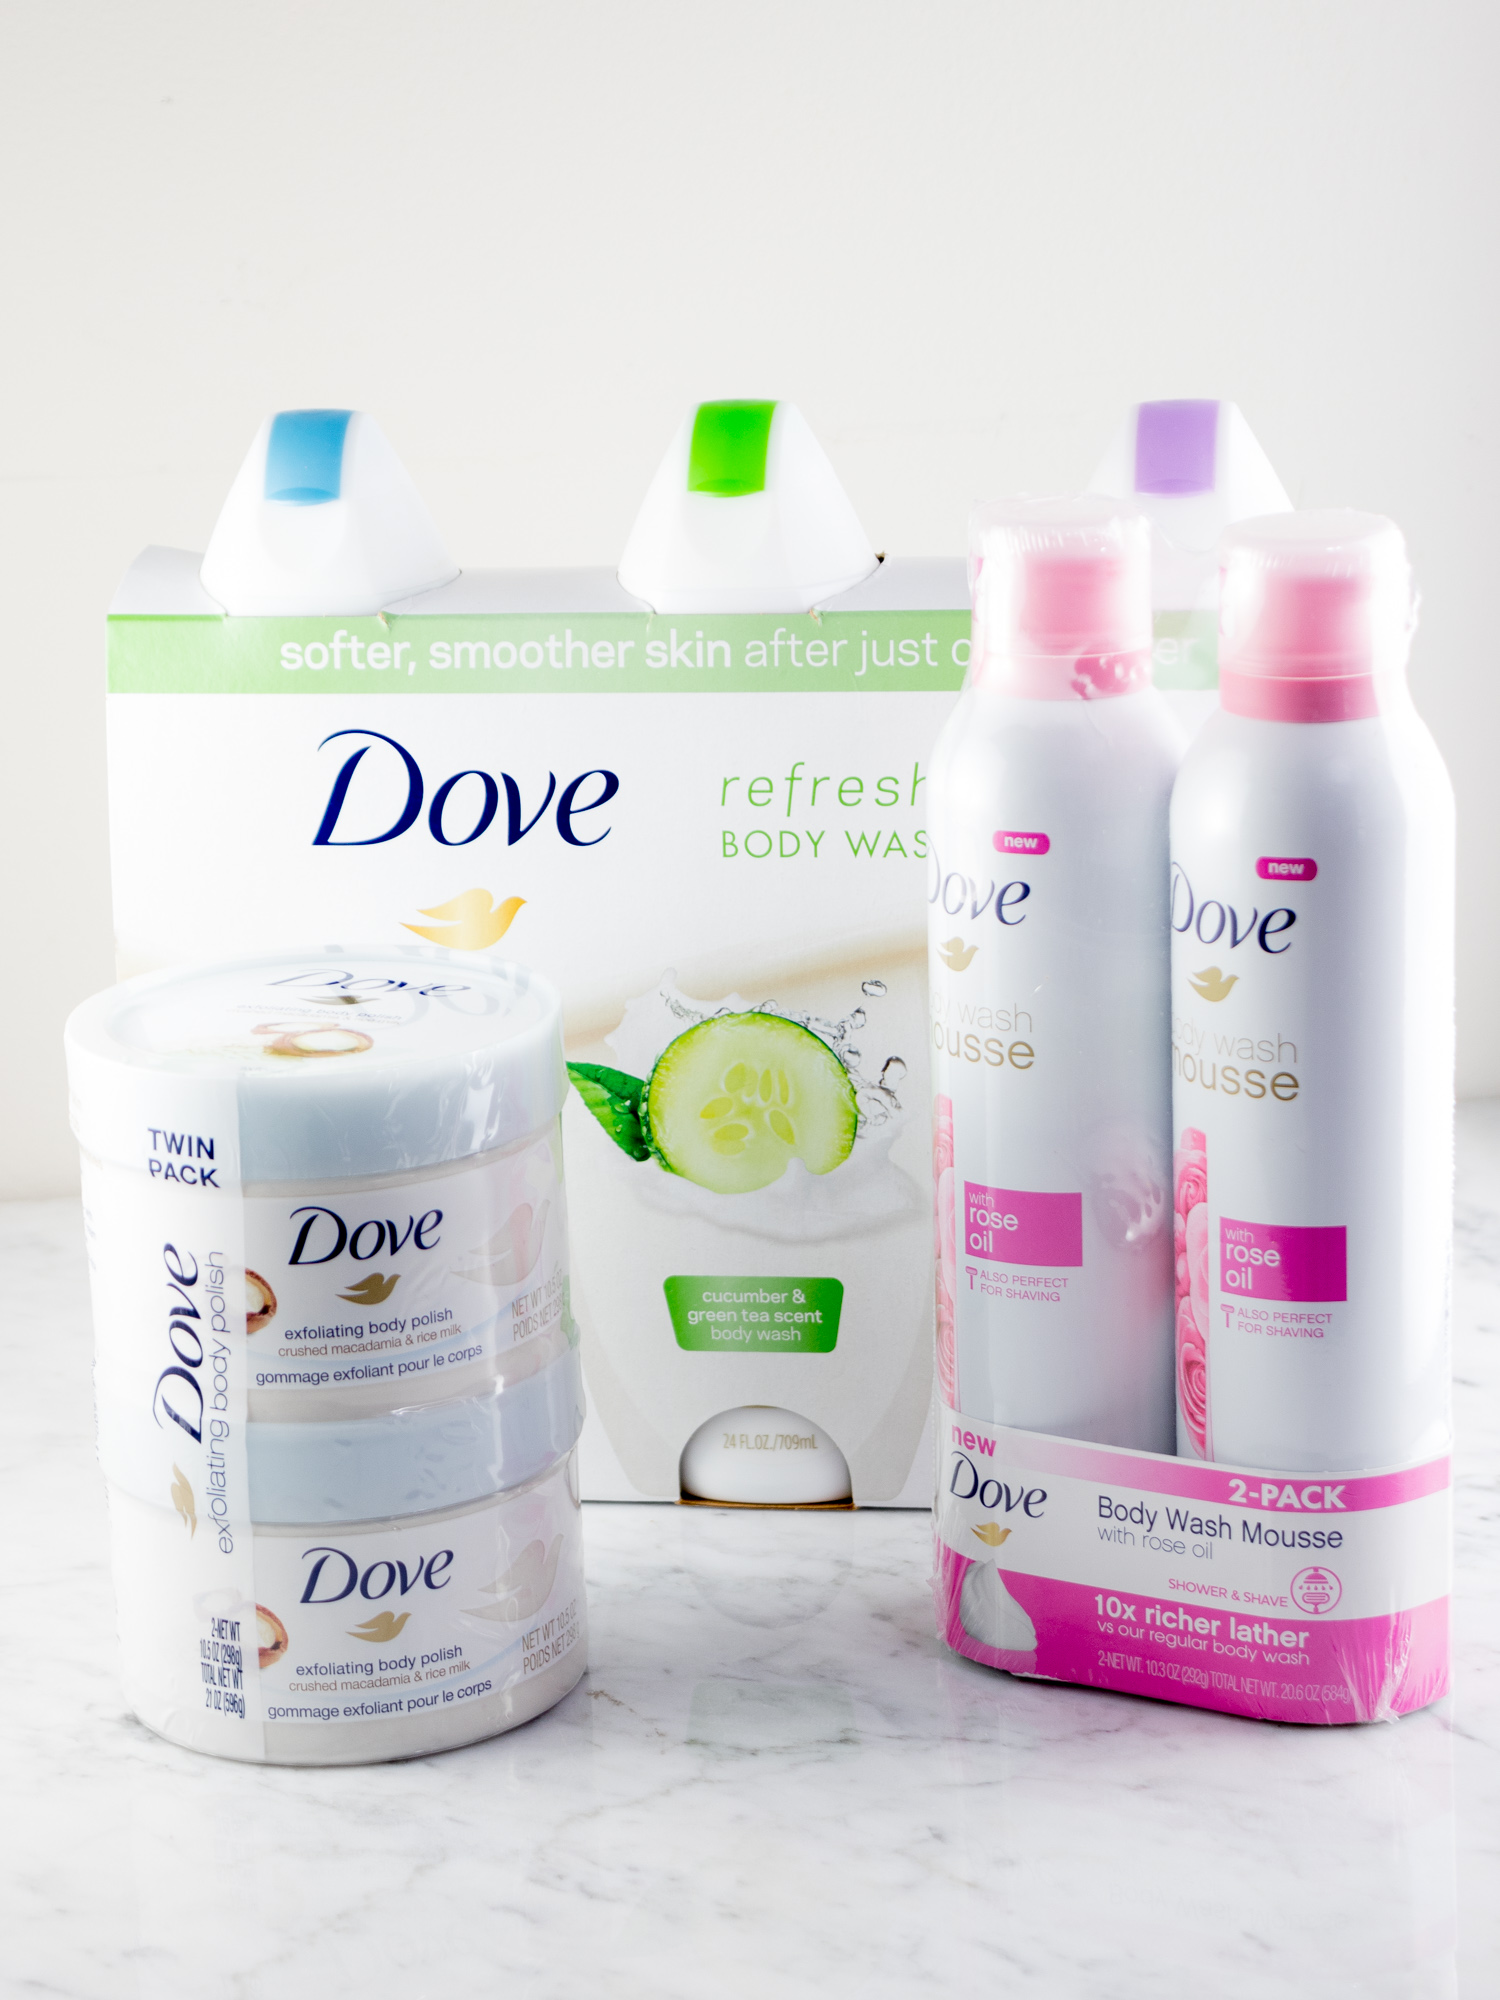 Pampering Myself for Mother's Day with Dove Products from Sam's Club